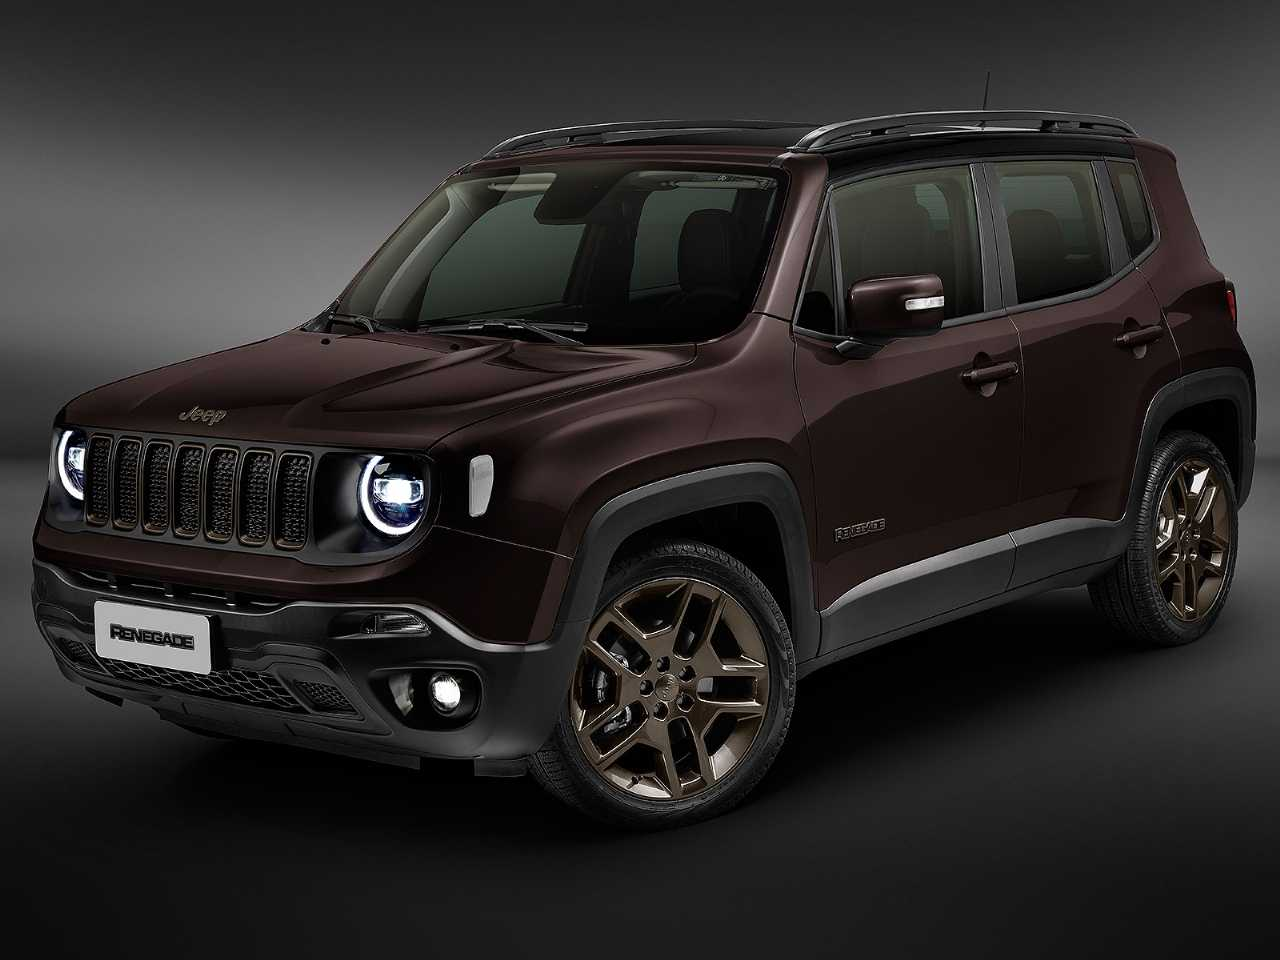 Jeep Renegade 2020 - ângulo frontal